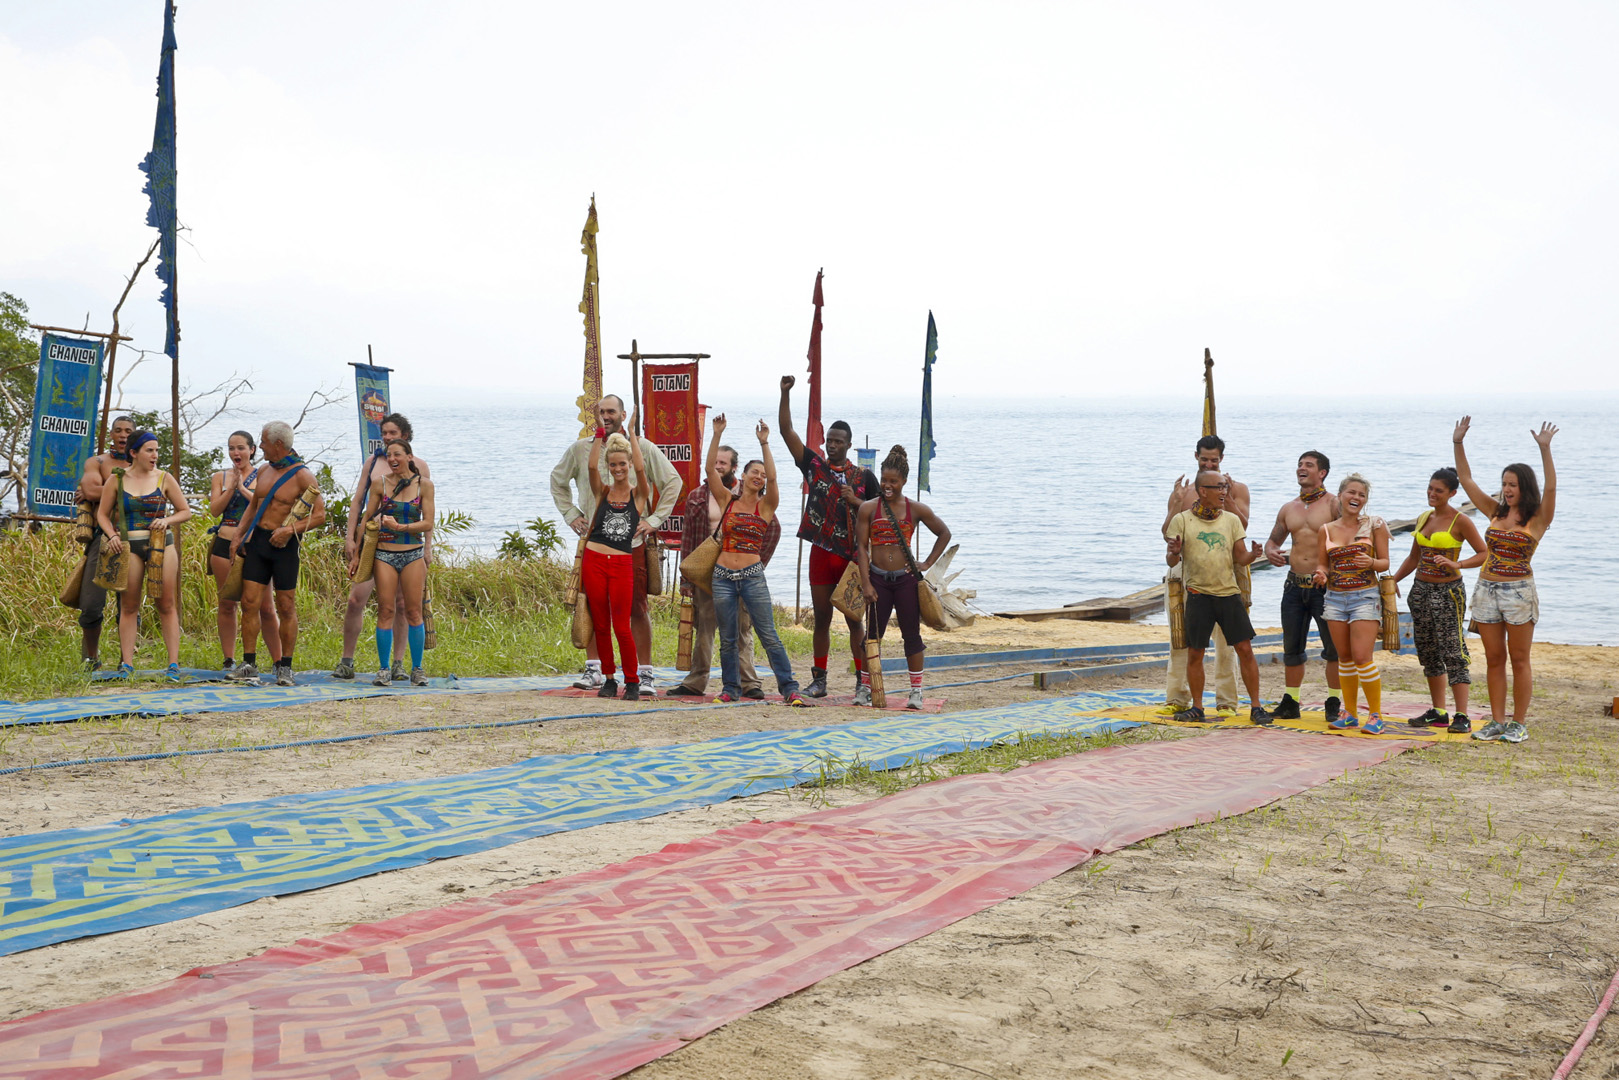 This season's first Immunity Challenge is sure to get everyone's hearts racing.